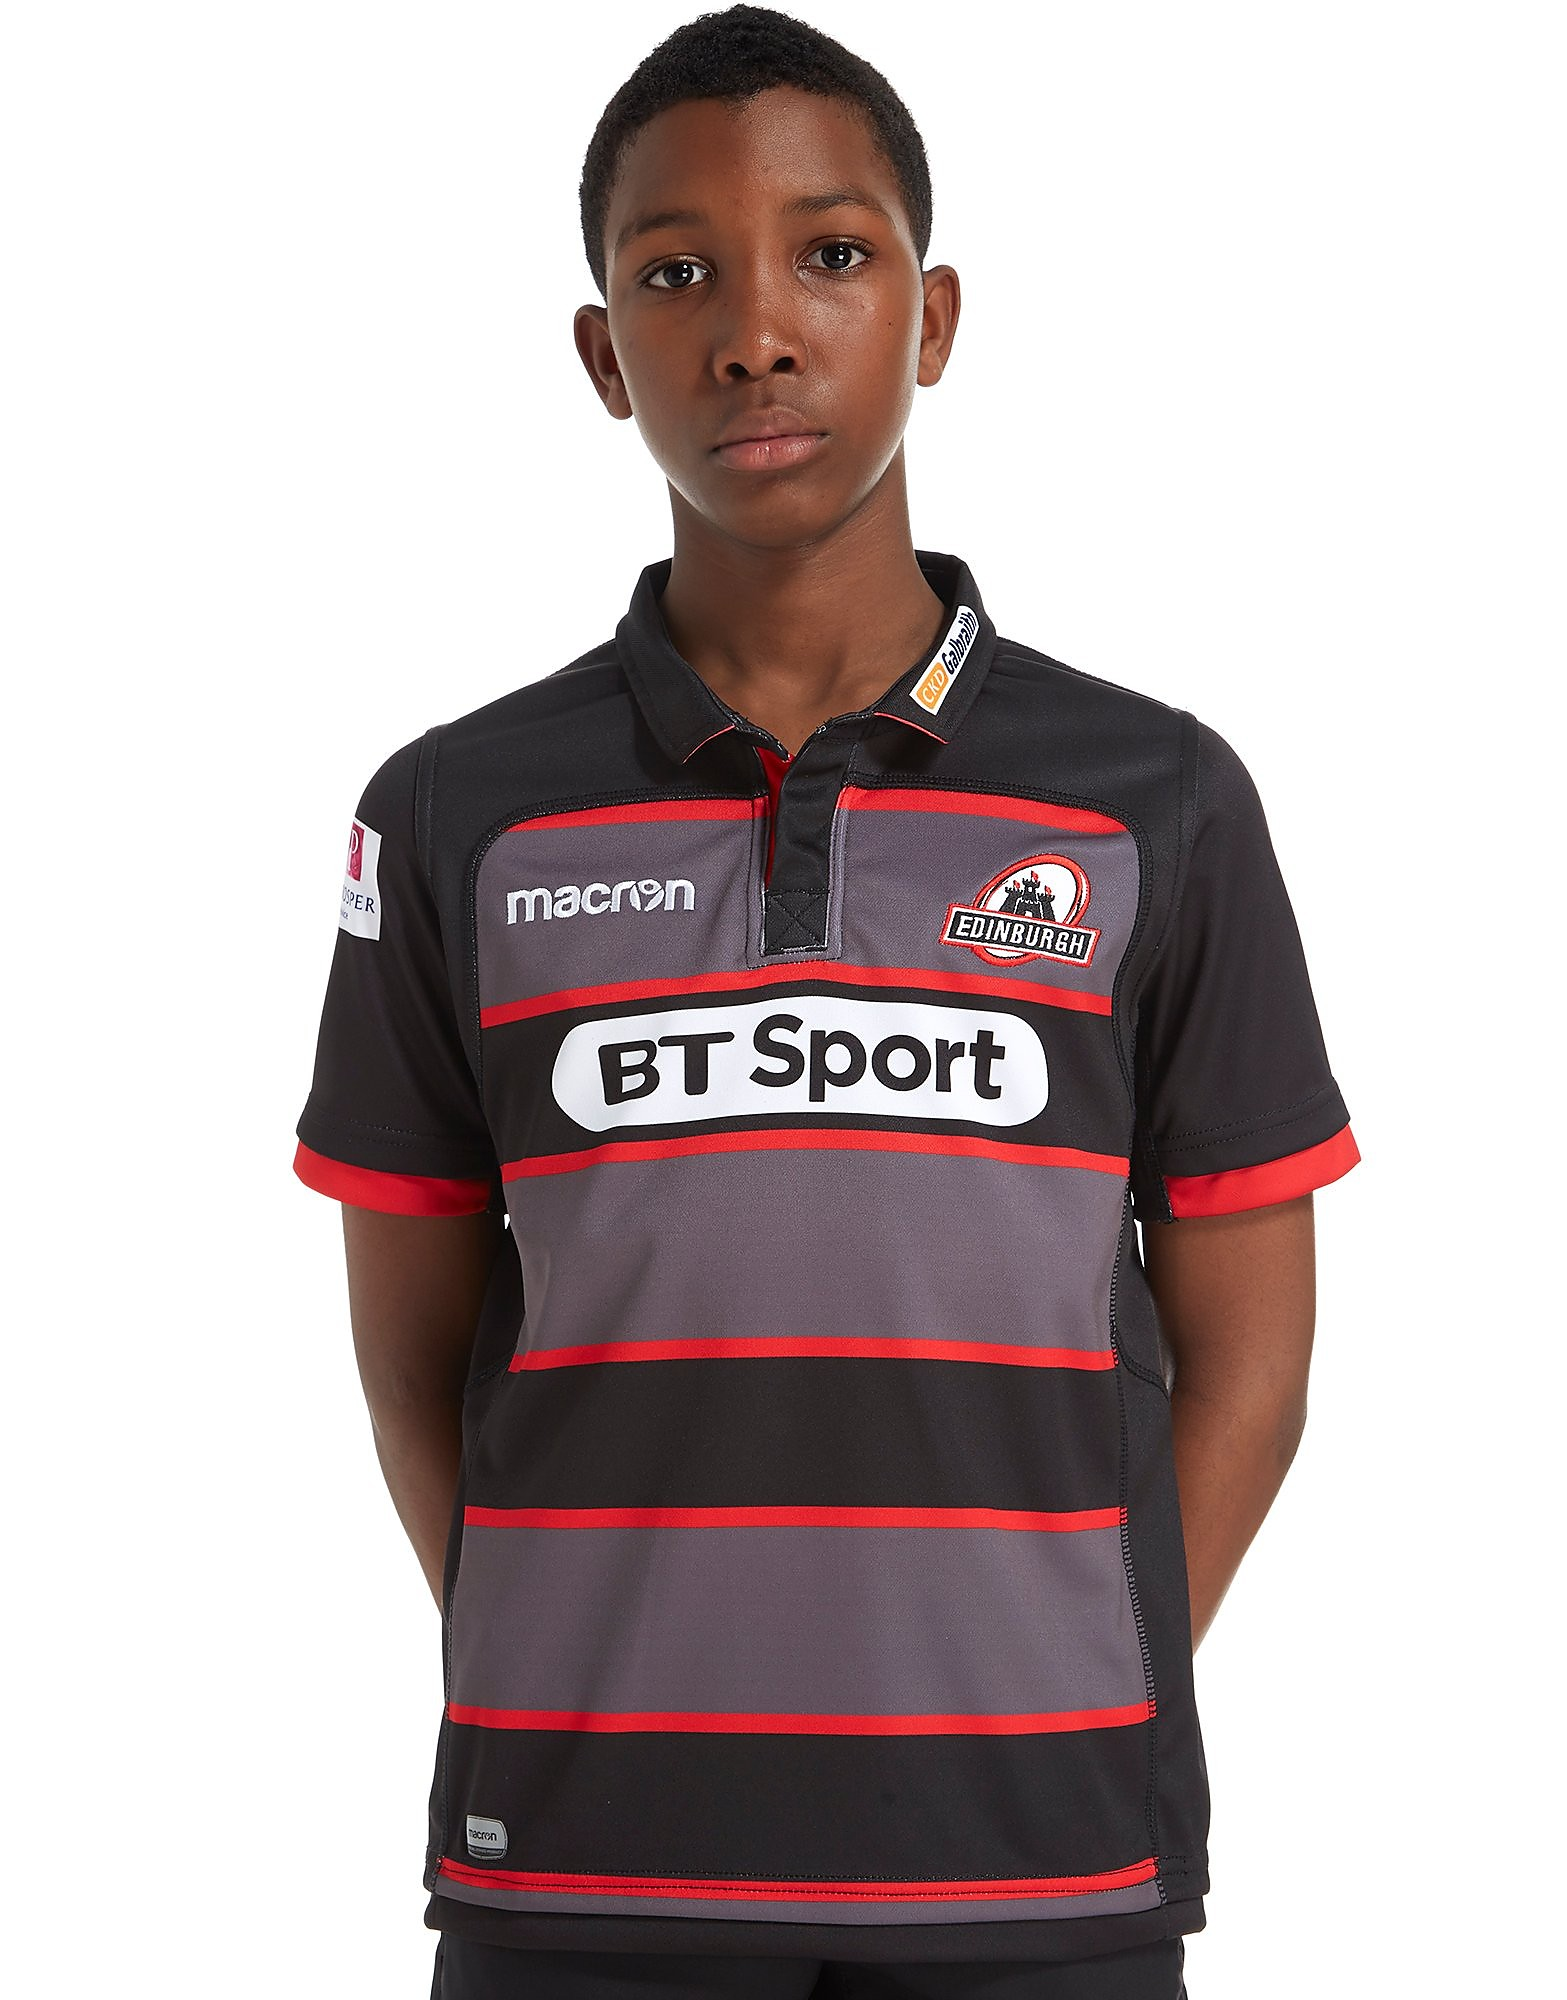 Macron Edinburgh Rugby 2017/18 Home Shirt Junior